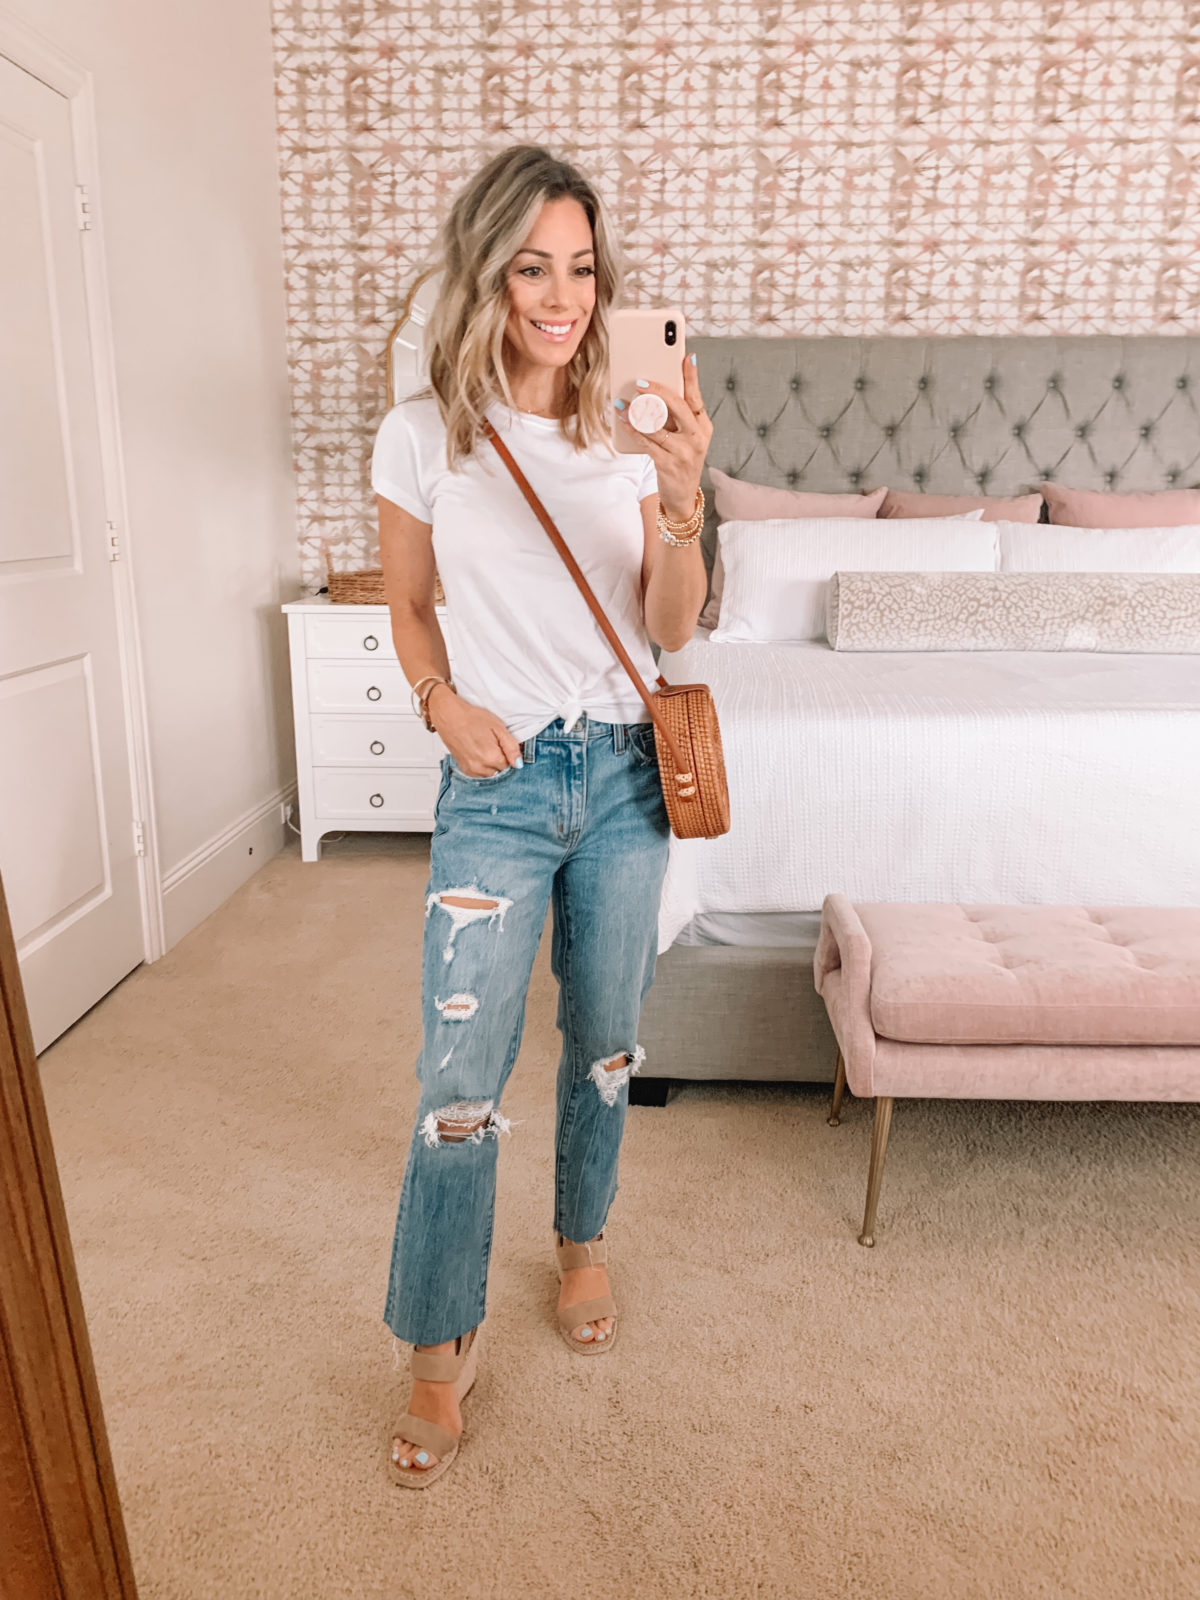 Dressing Room Finds, Knot front tee and jeans with Crossbody and wedges